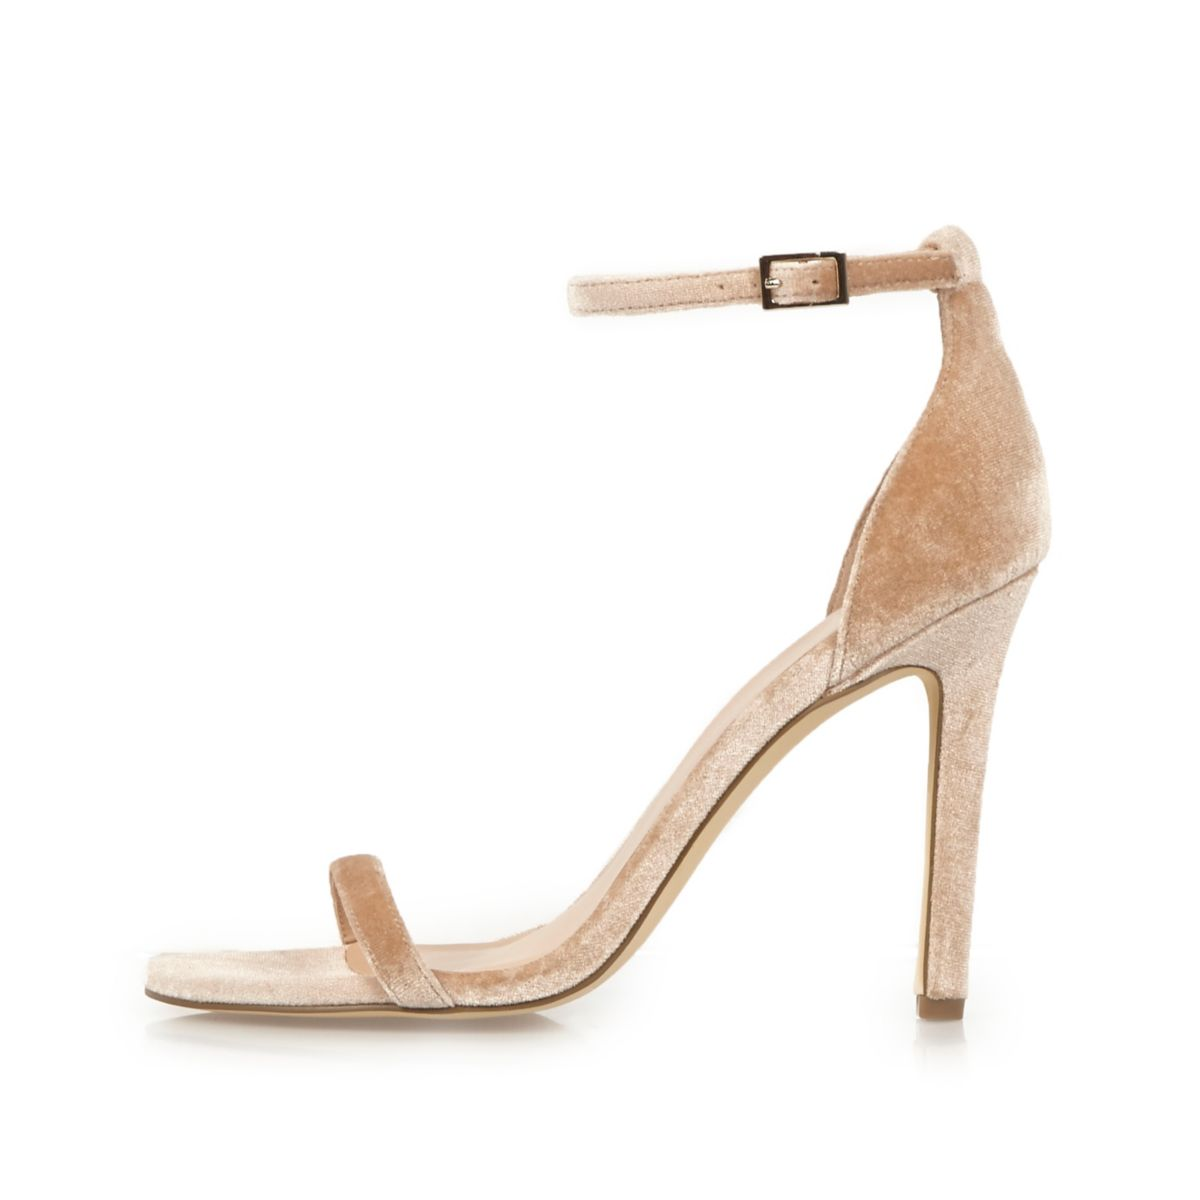 Nude velvet barely there heeled sandals - Shoes & Boots - Sale - women